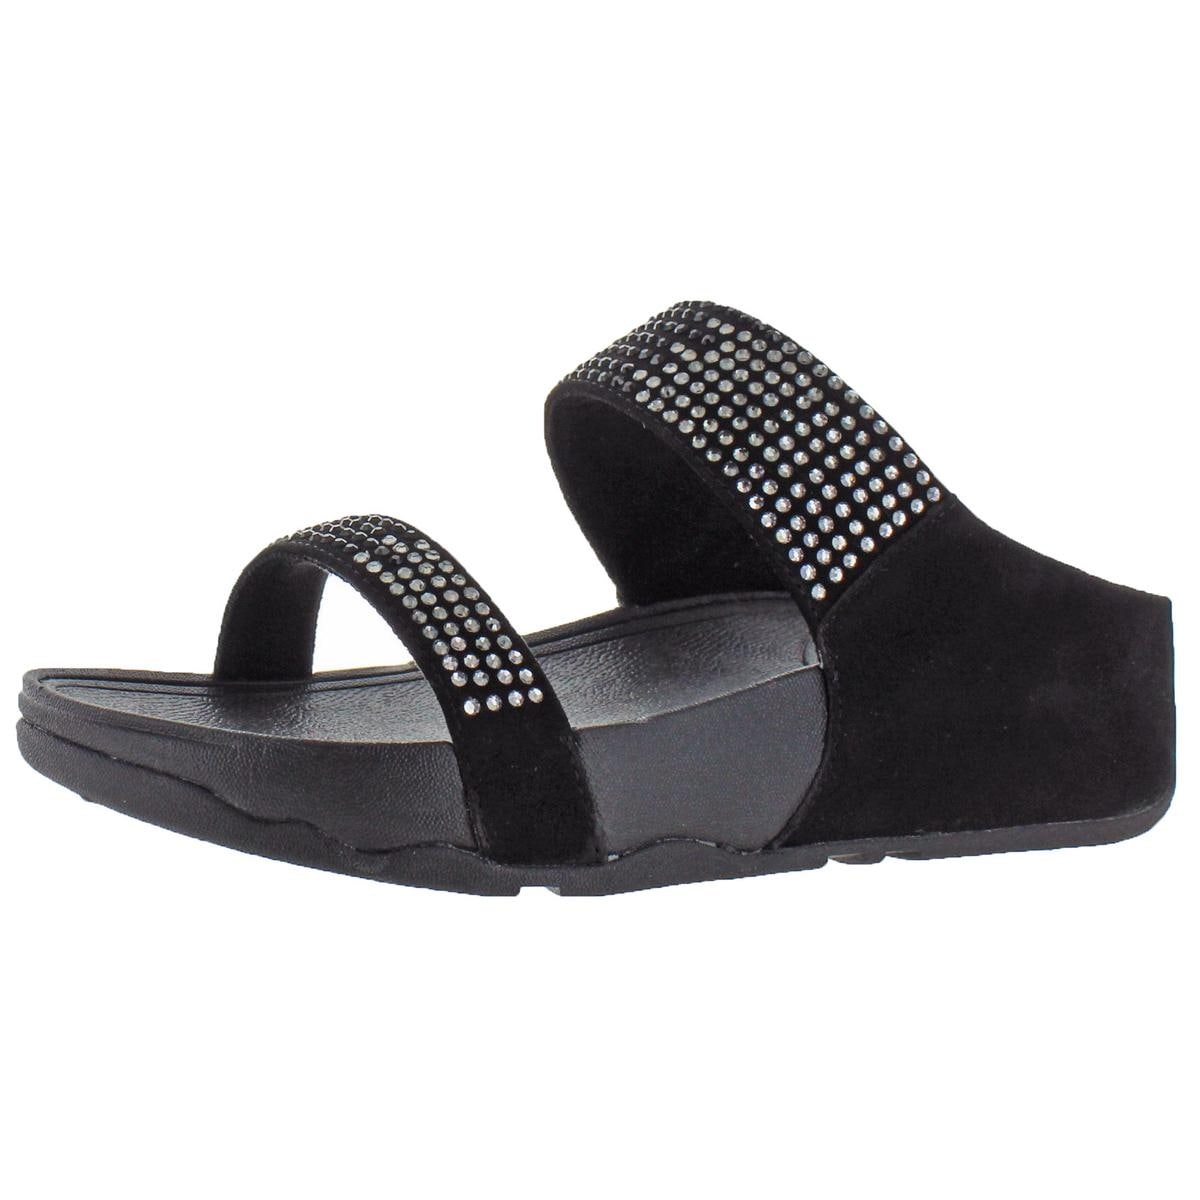 777f8816ae0a27 Shop Fitflop Womens Flare Slide Slide Sandals Suede Jeweled - Free ...